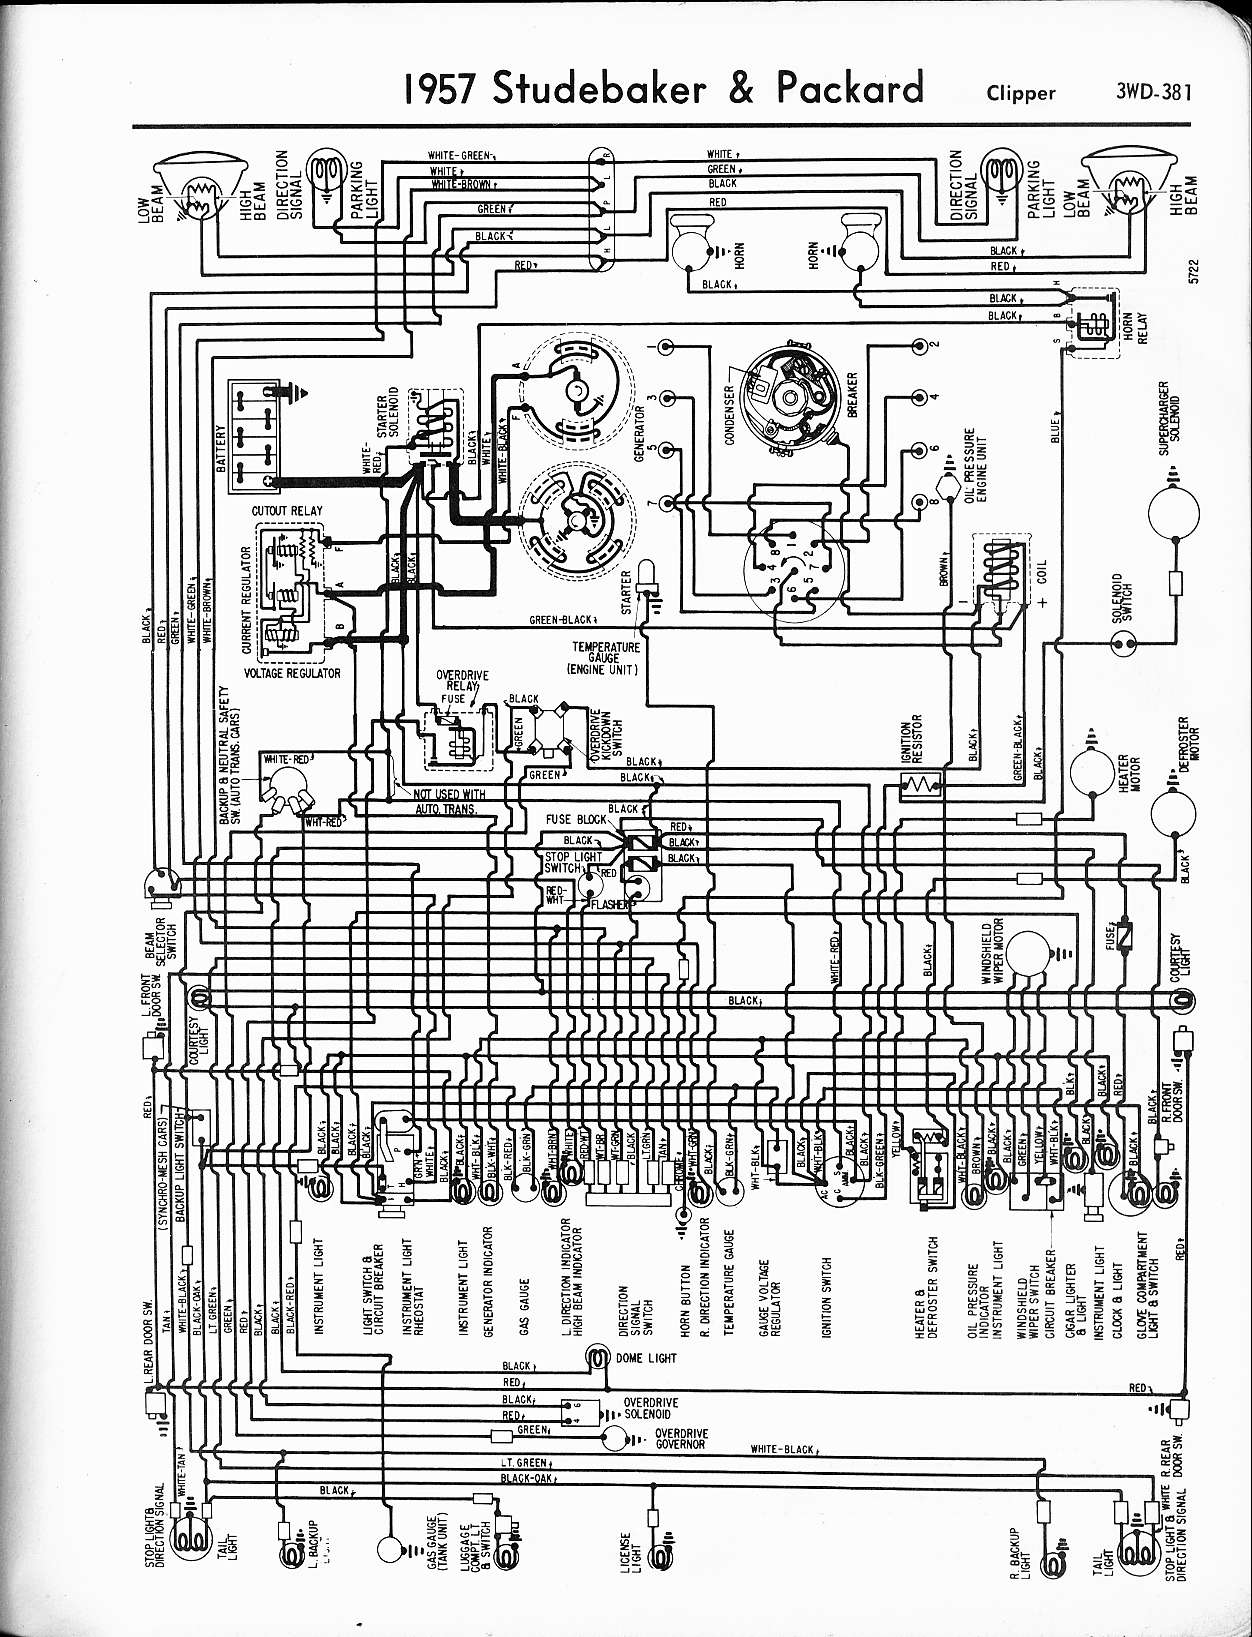 MWire5765 381 packard wiring diagrams the old car manual project studebaker wiring diagrams at soozxer.org